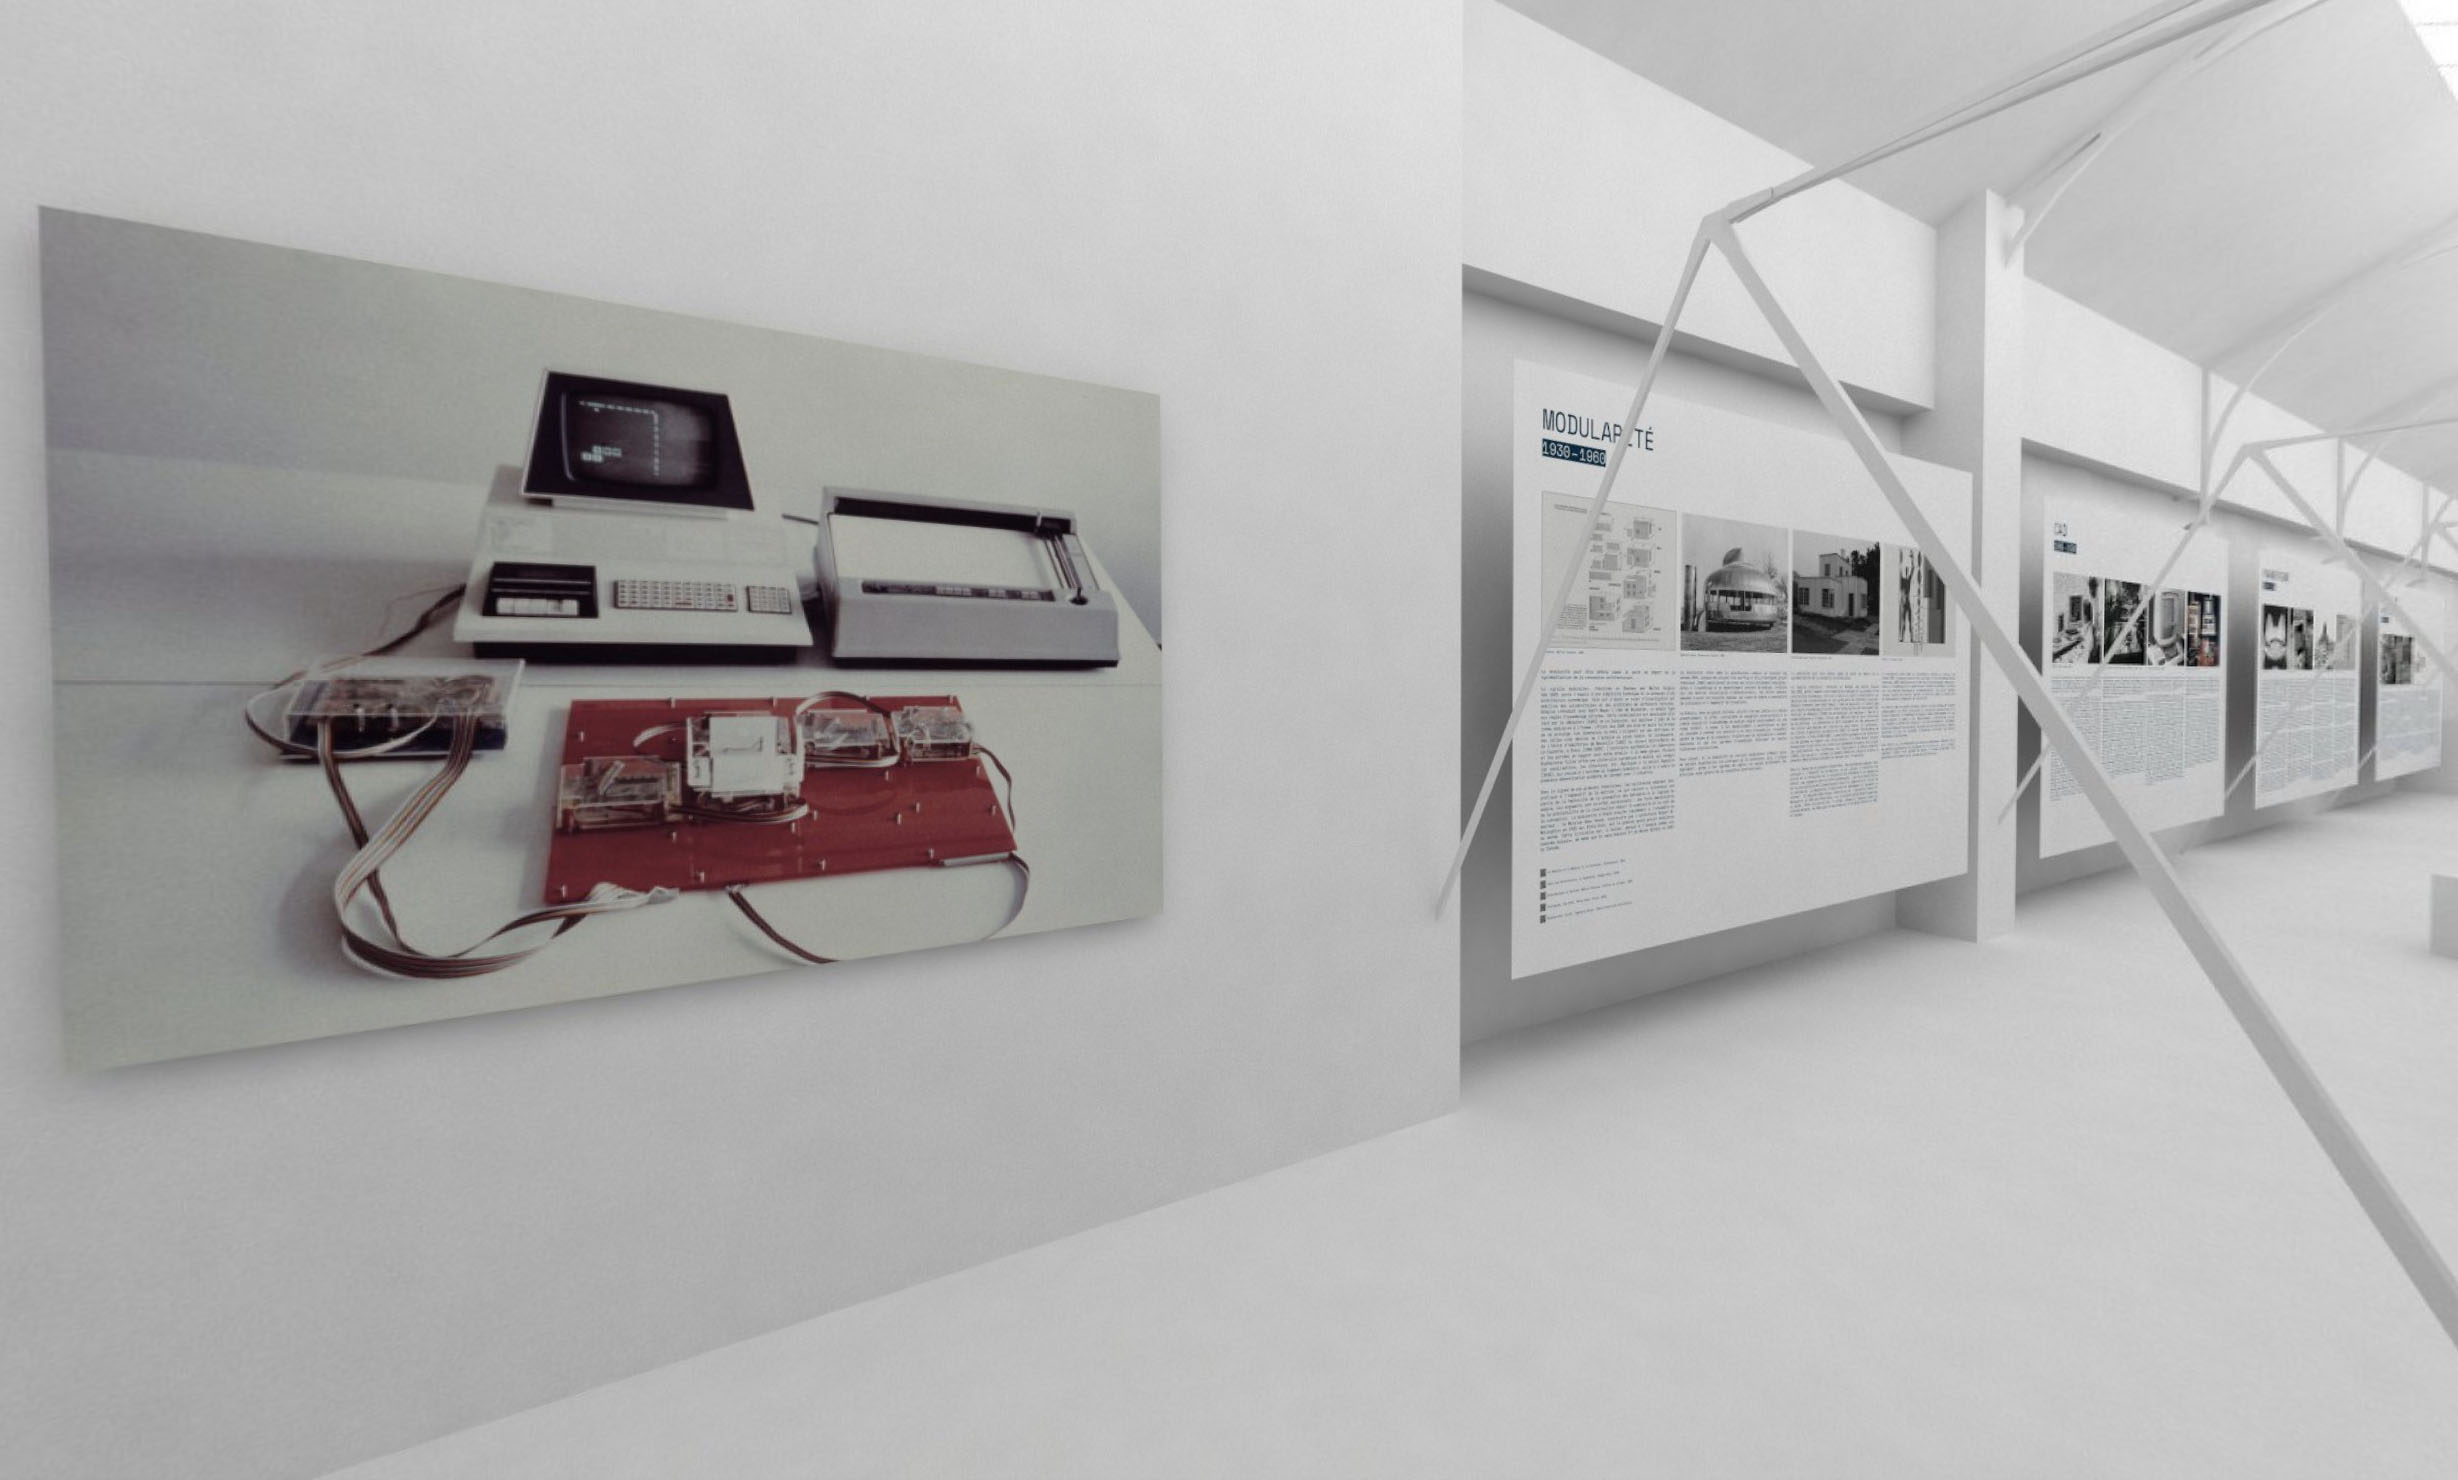 all-white interior with images and text on the wall, part of Artificial Intelligence & Architecture